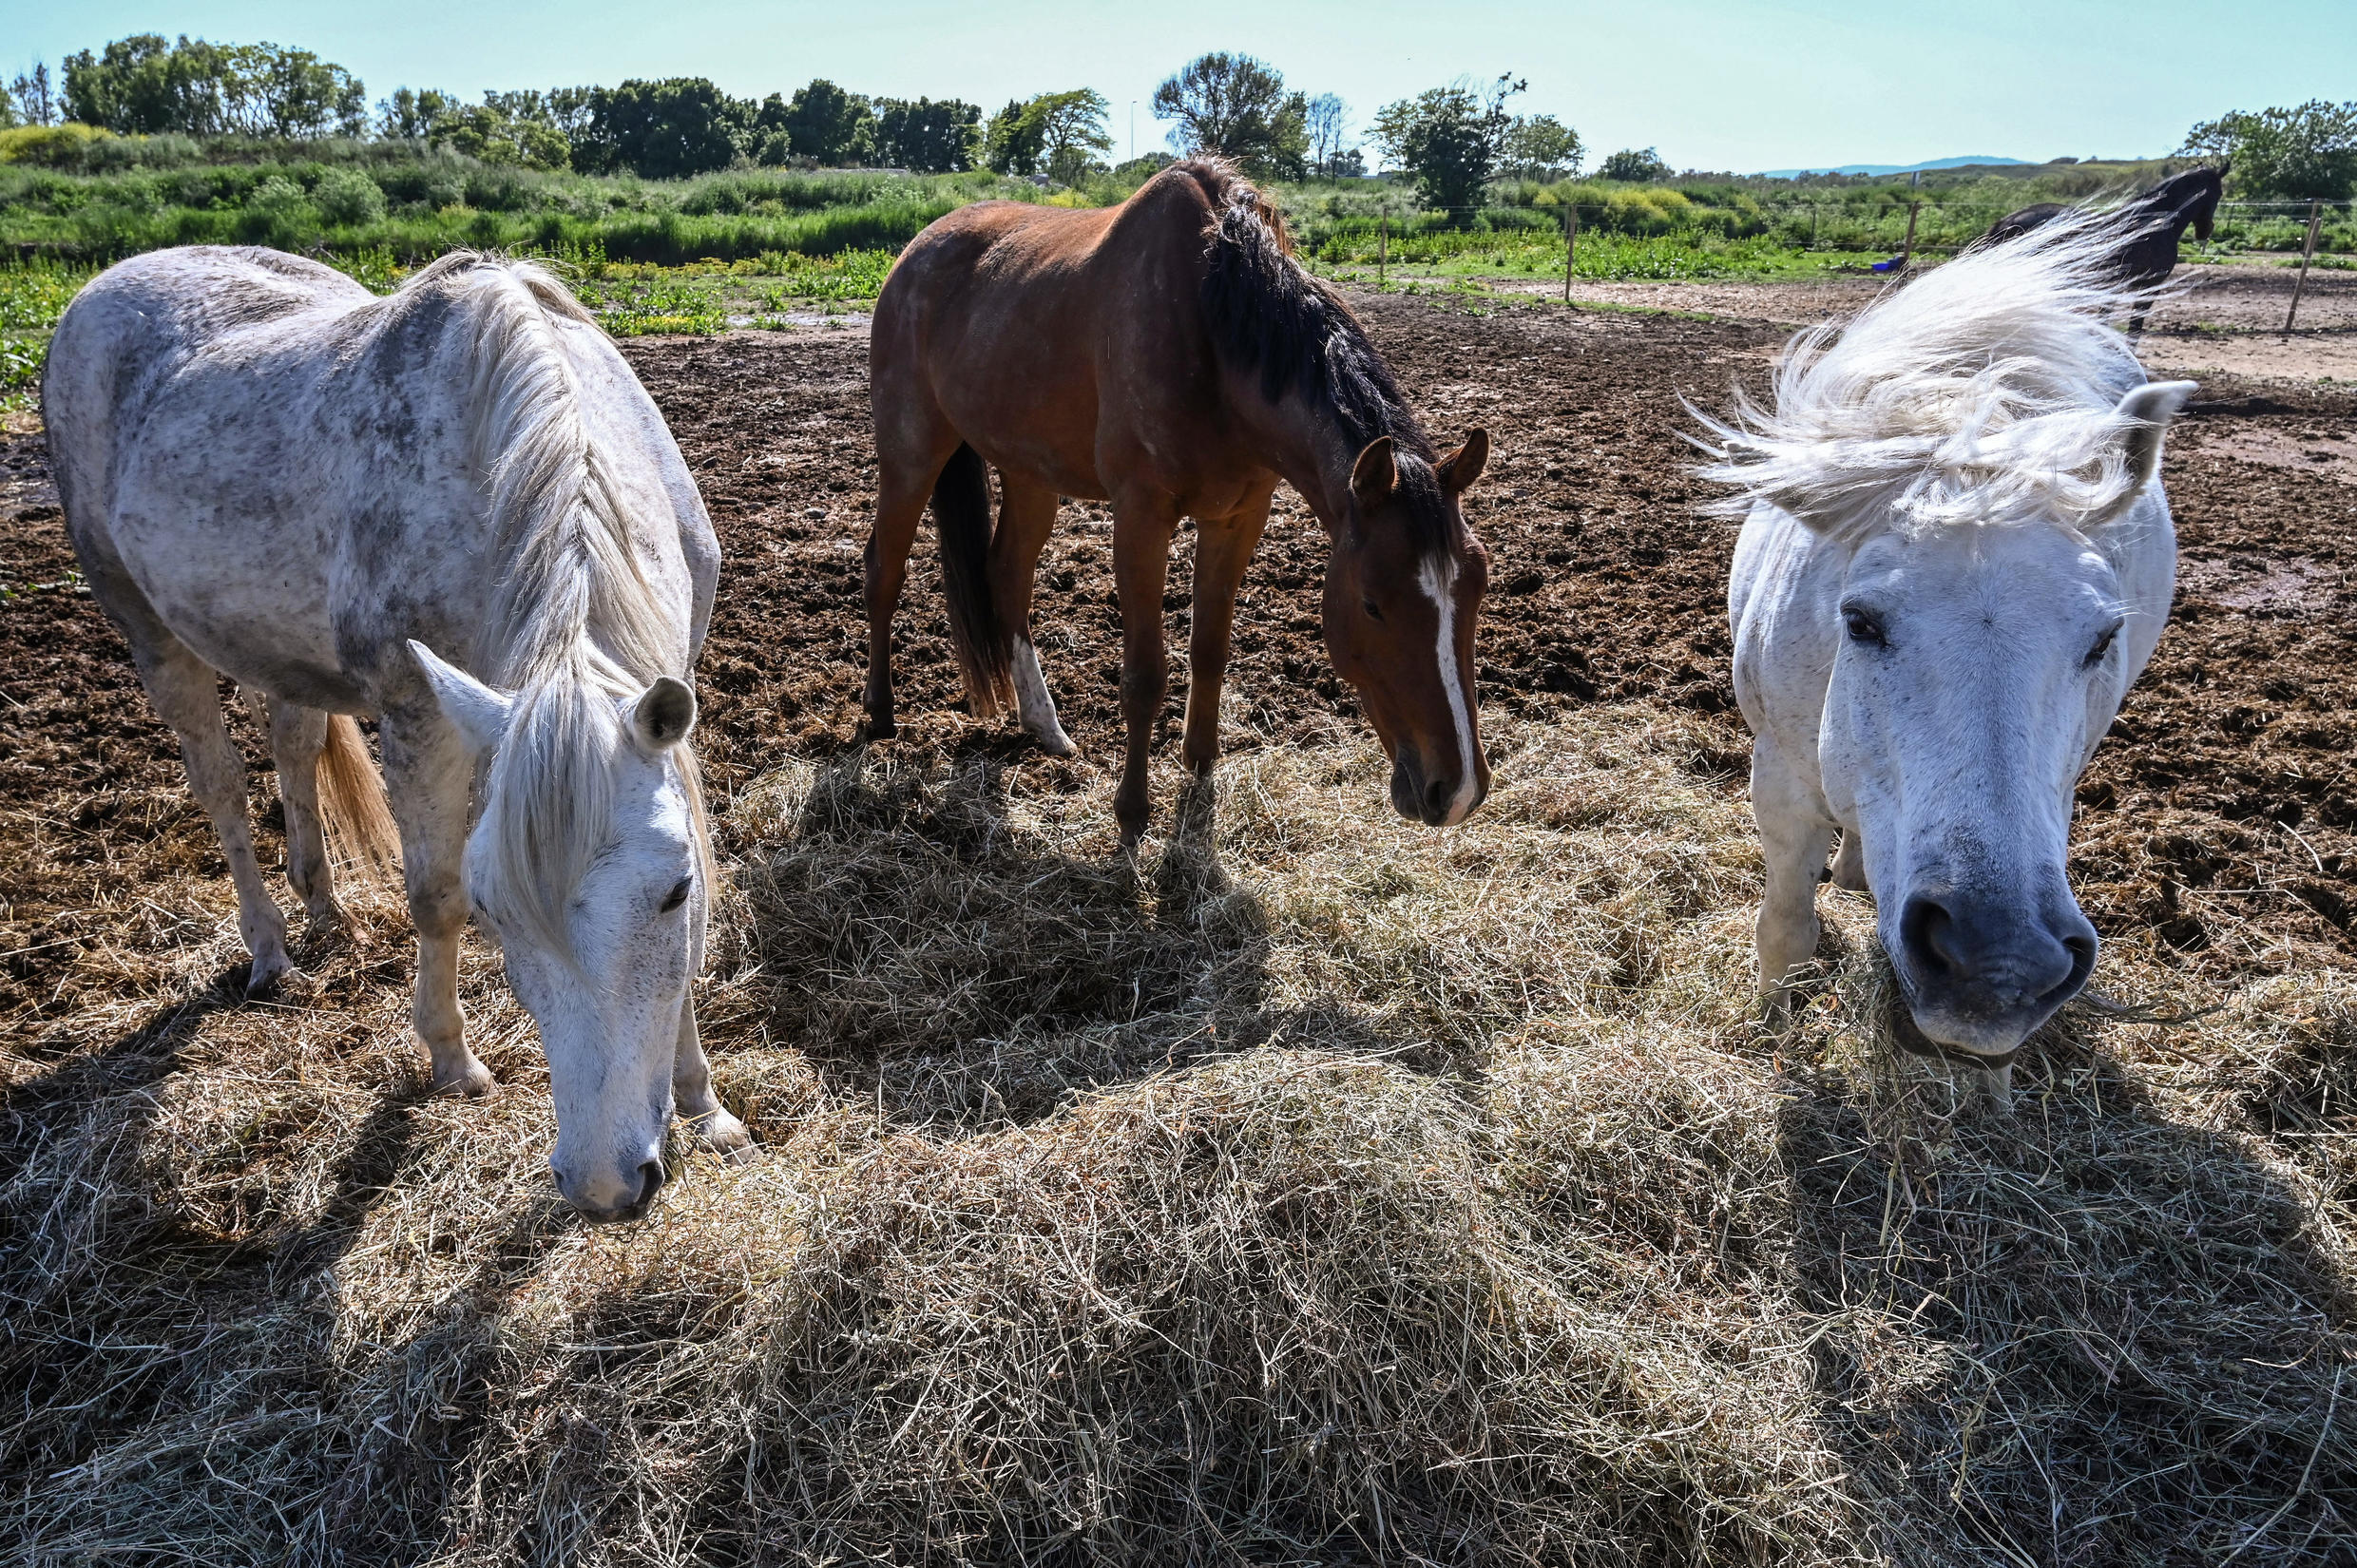 Horses eat hay in a field in Lattes, near Montpellier, southern France on April 24, 2020.